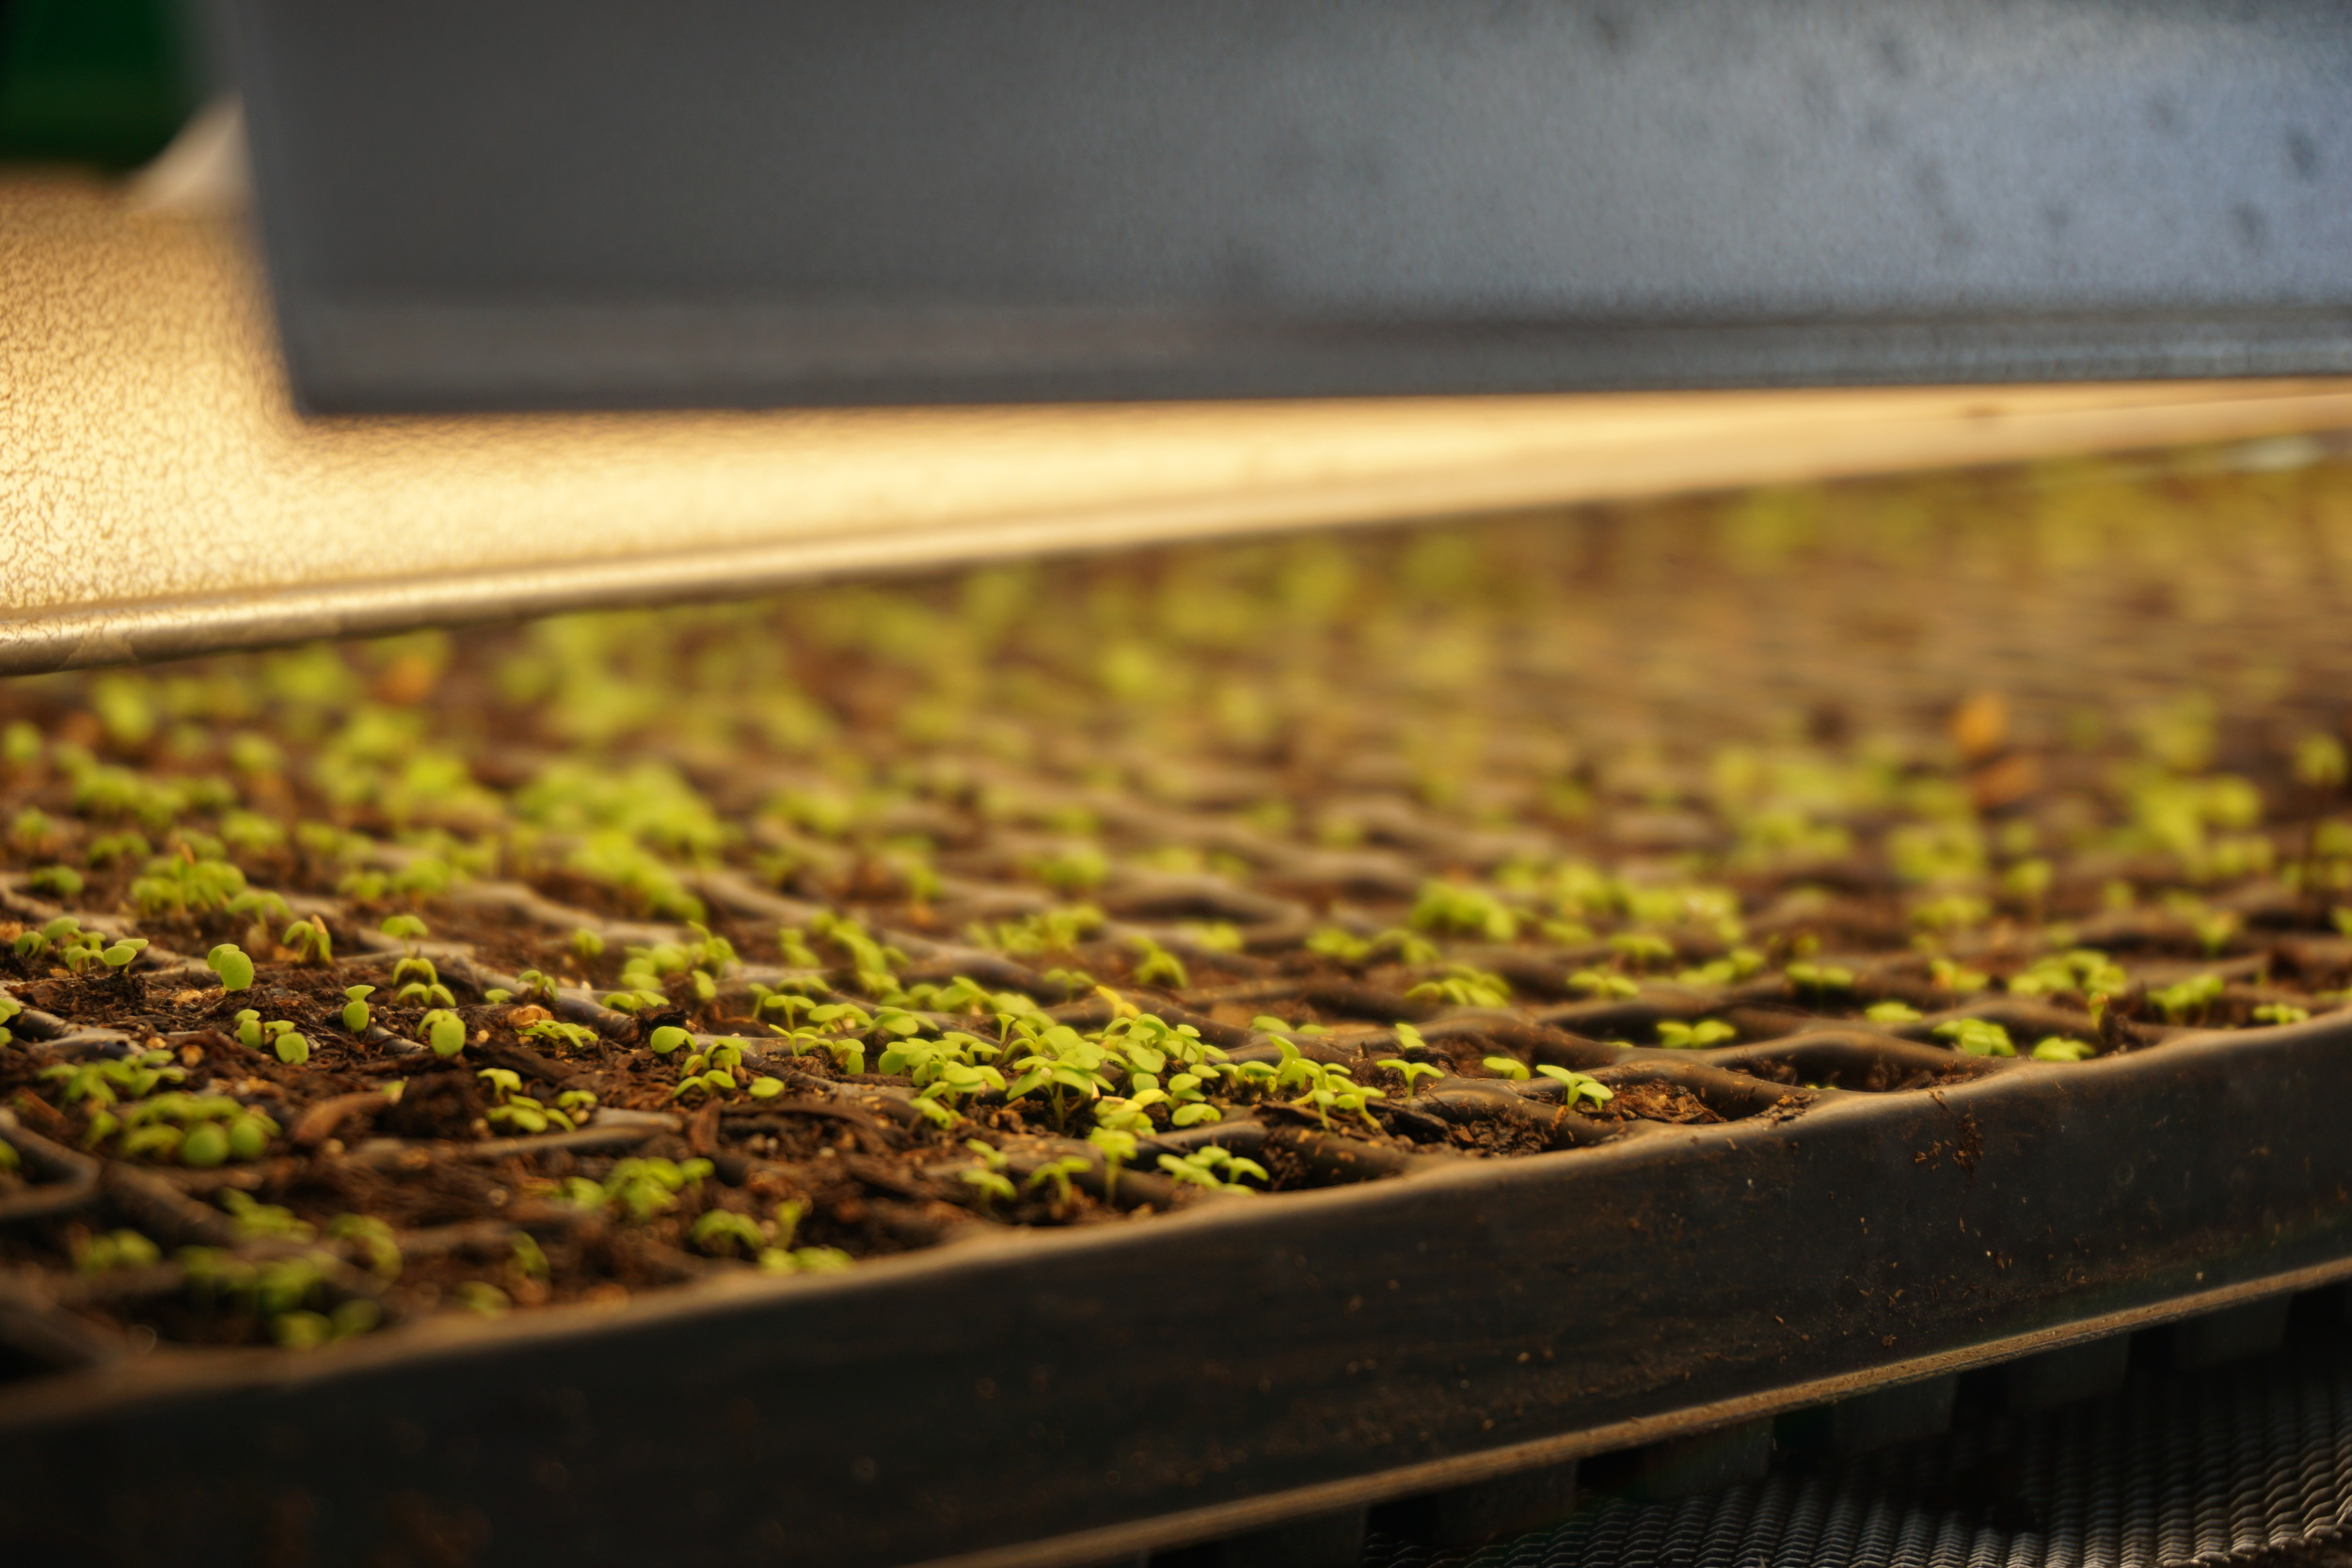 tansy germinated first! excited to give this one to CSA members. it's very cheery